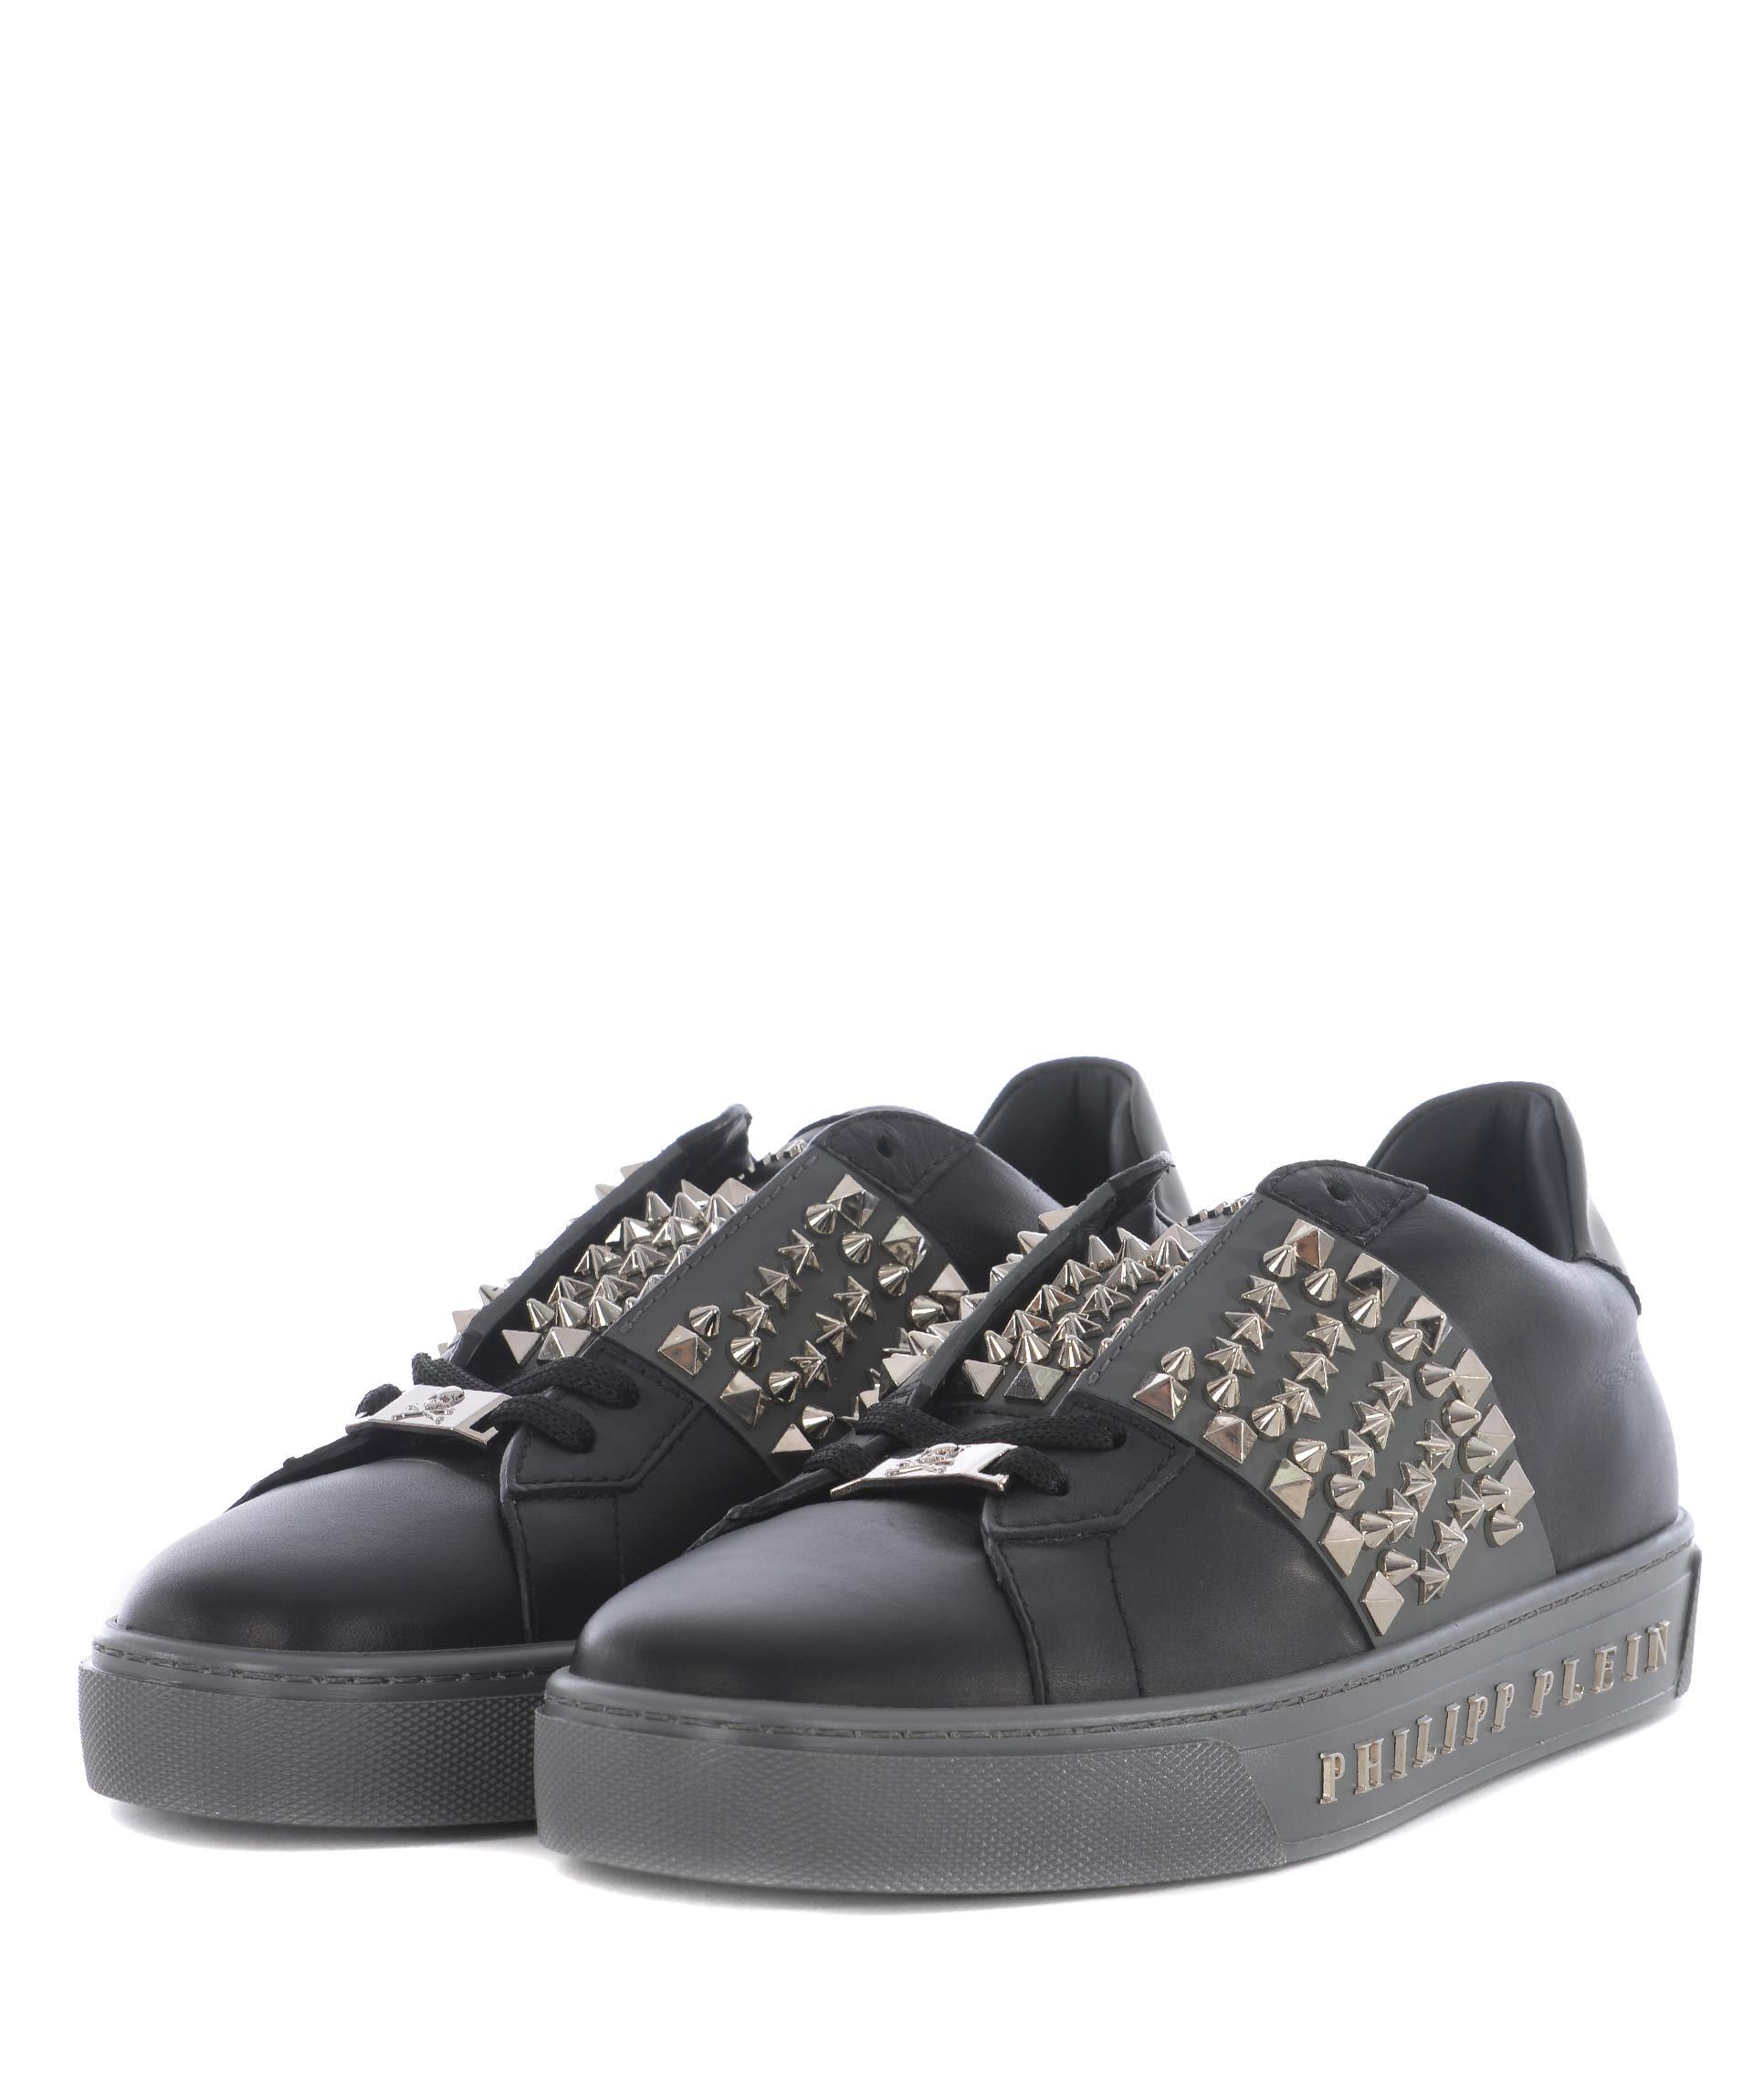 Philipp Plein Lo-top Take Sneakers